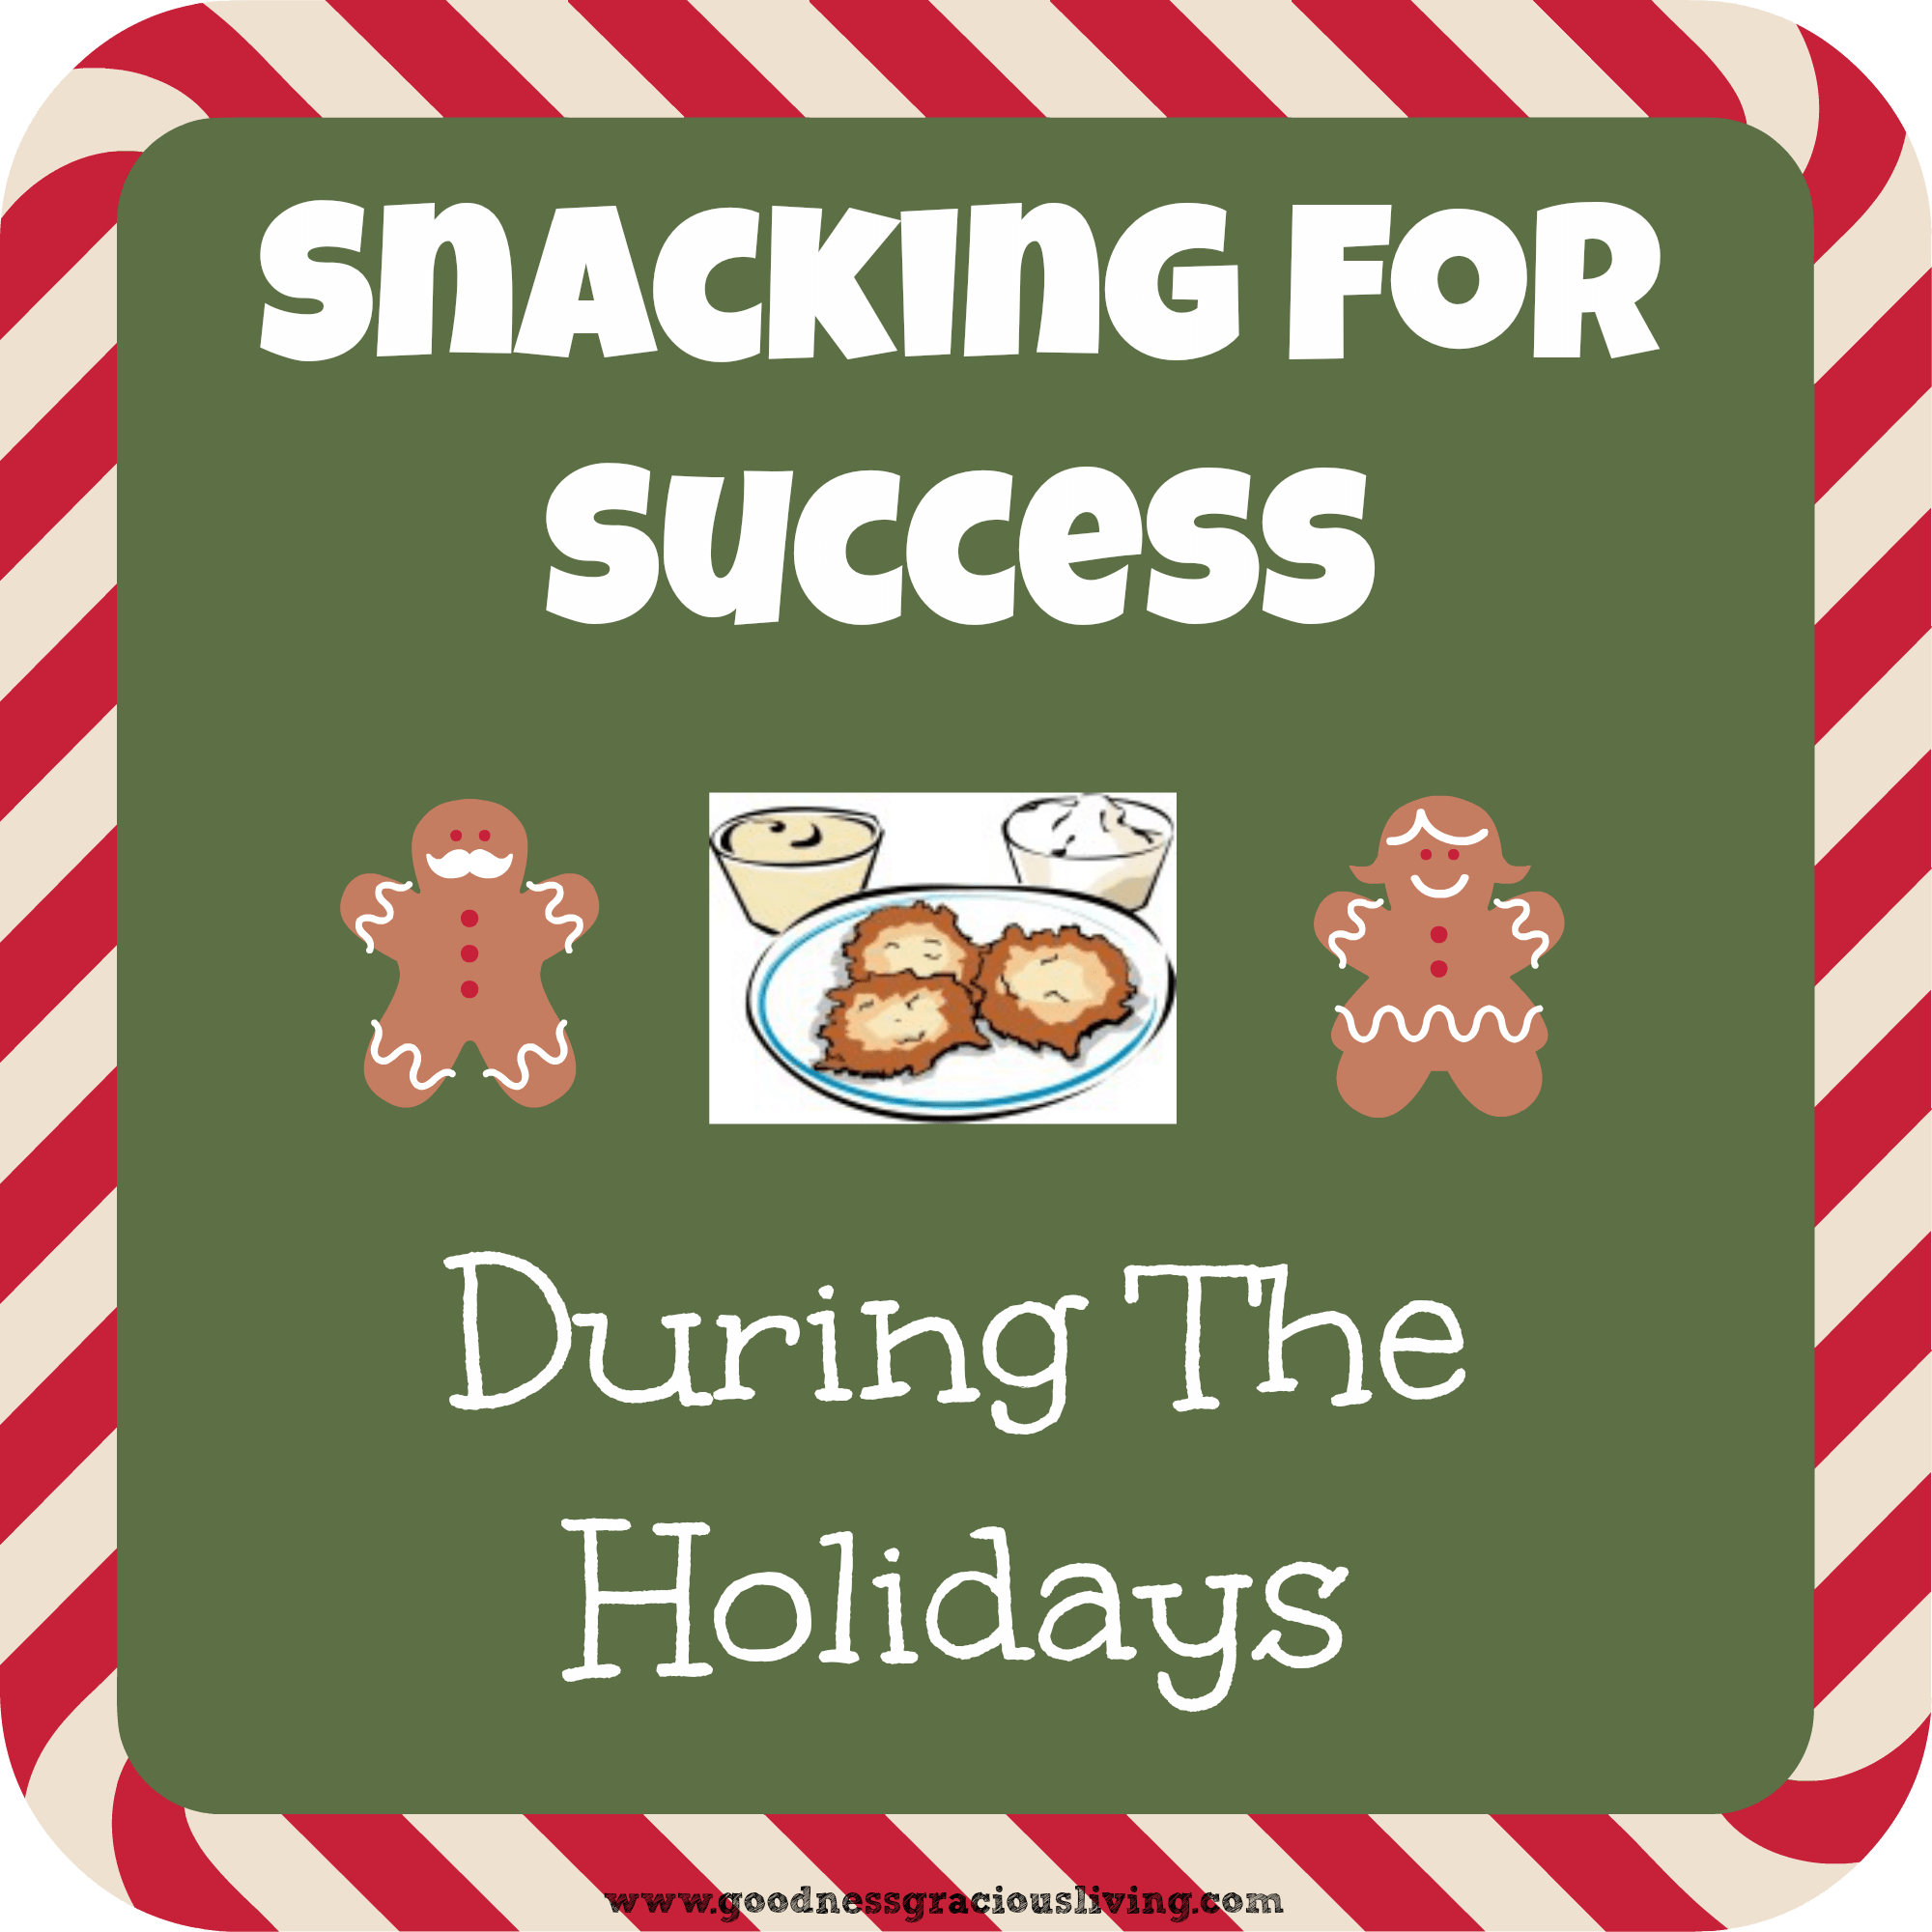 Snacking For Success During The Holidays